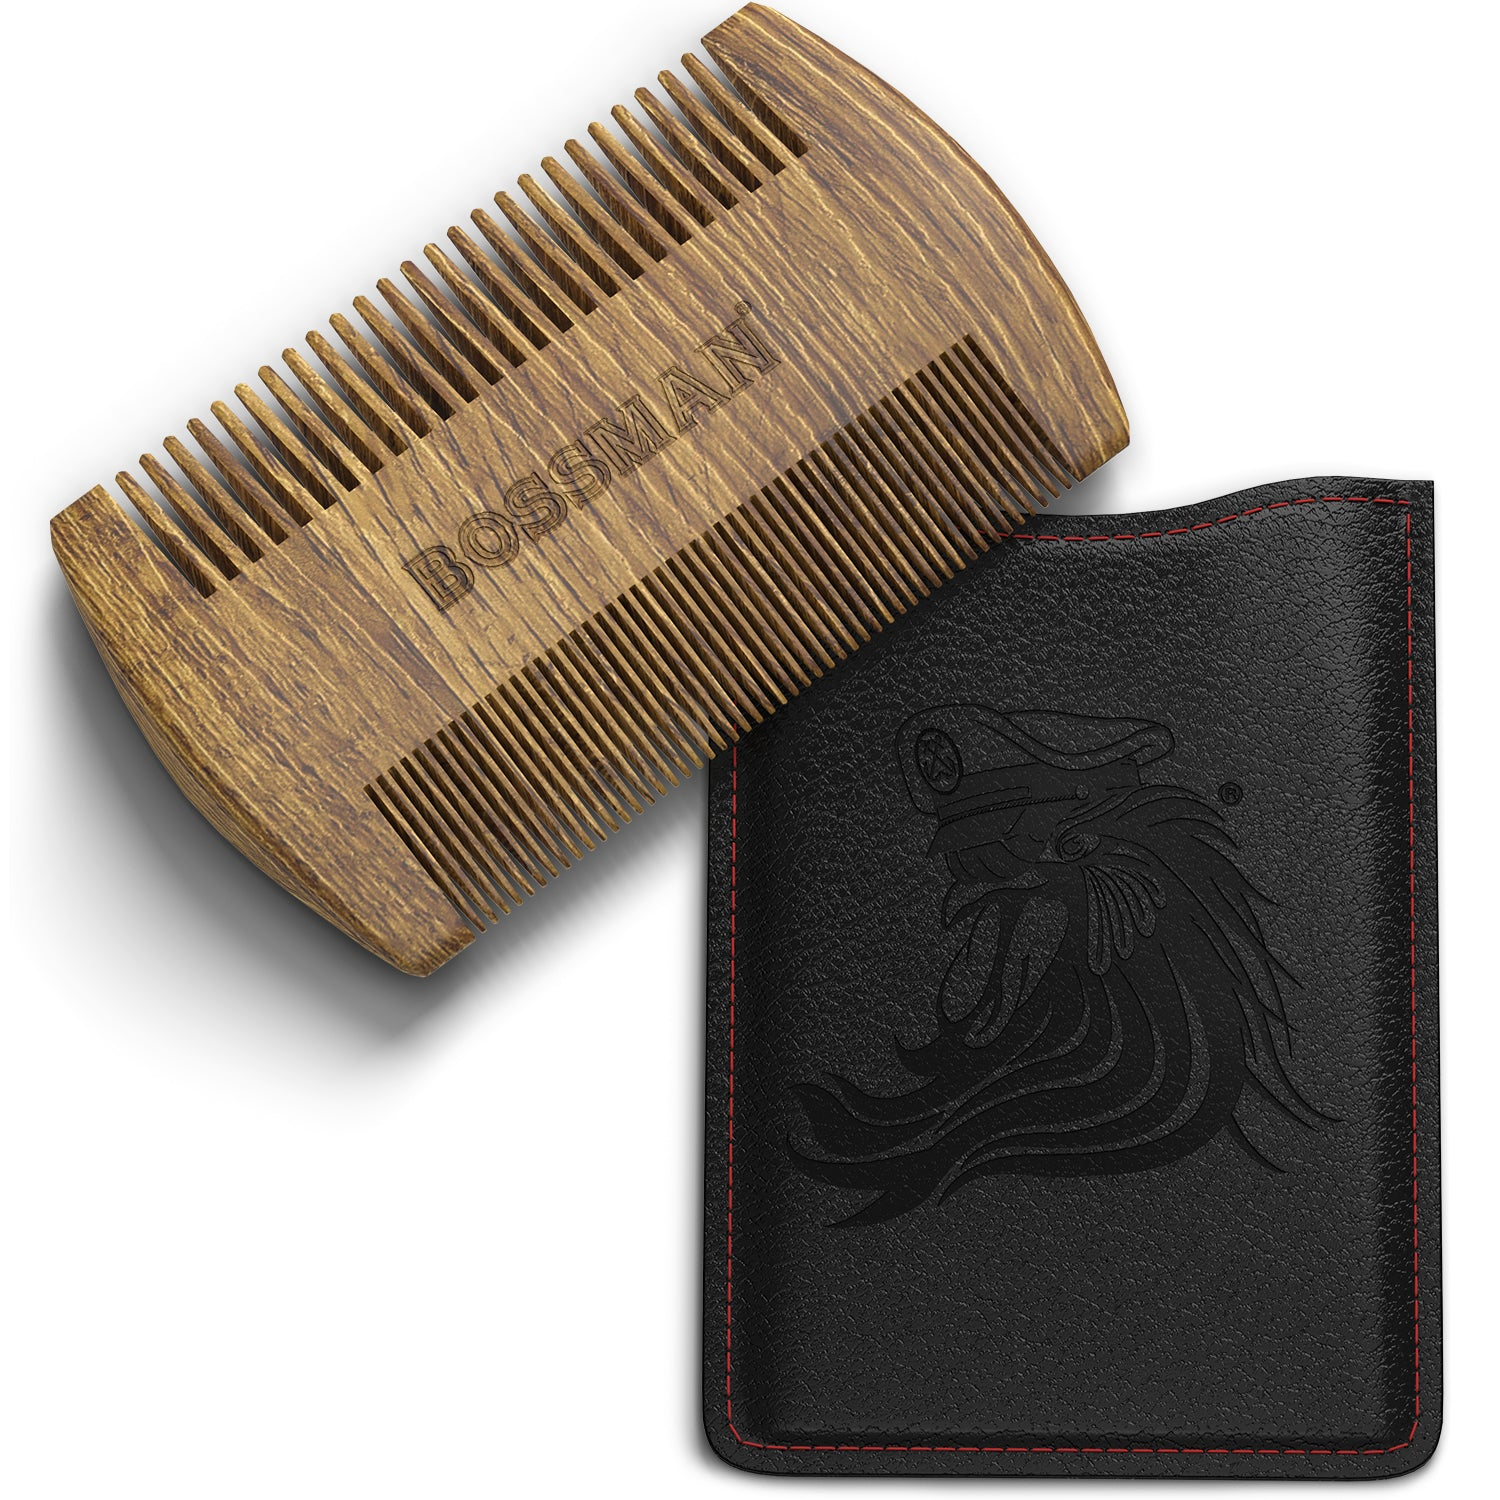 Pocket Size Green Sandalwood Comb